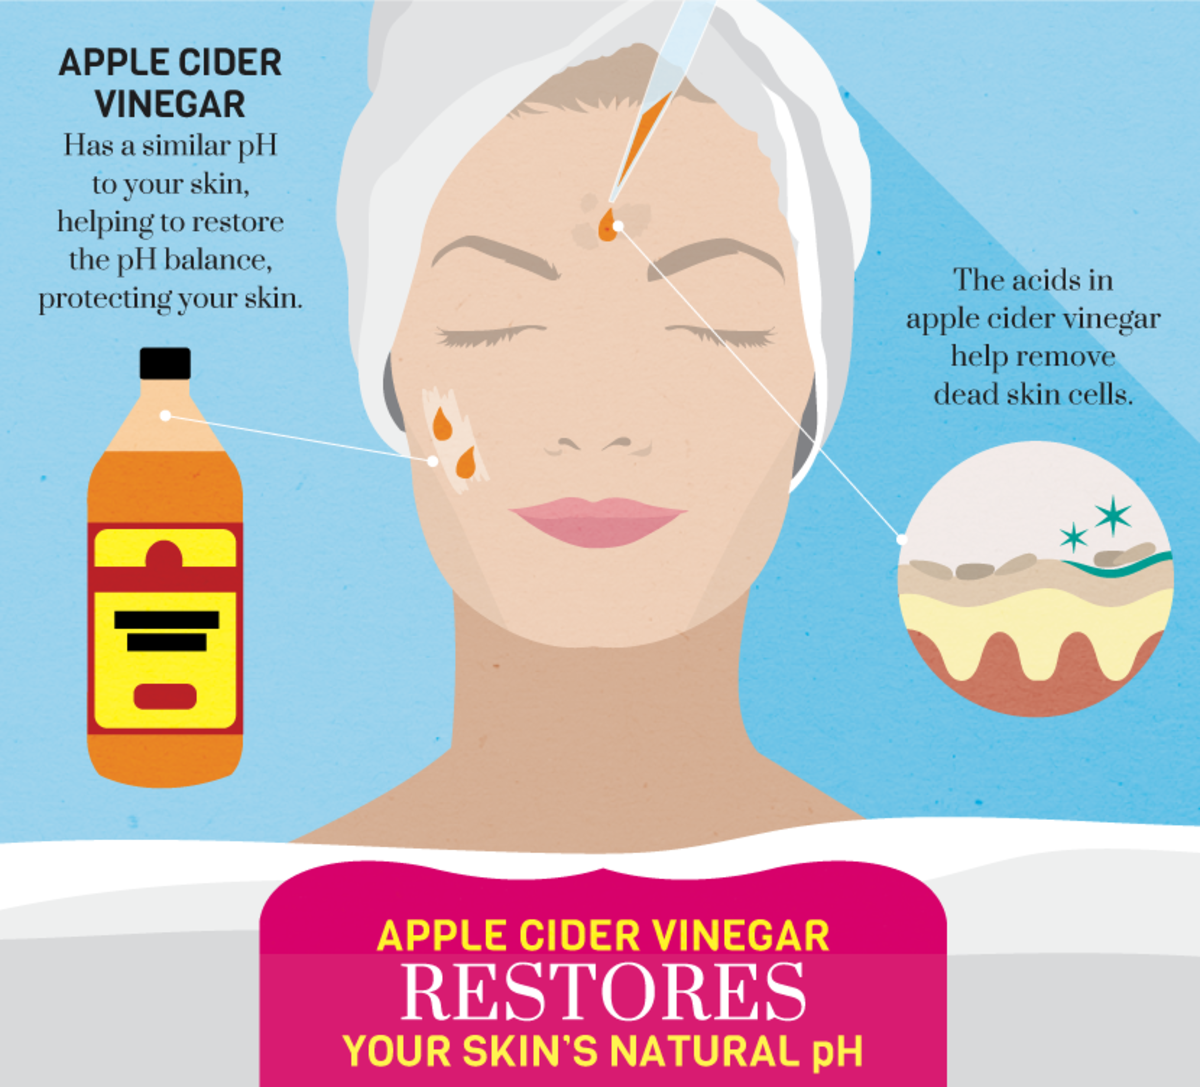 apple-cider-vinegar-treatments-for-acne-free-skin